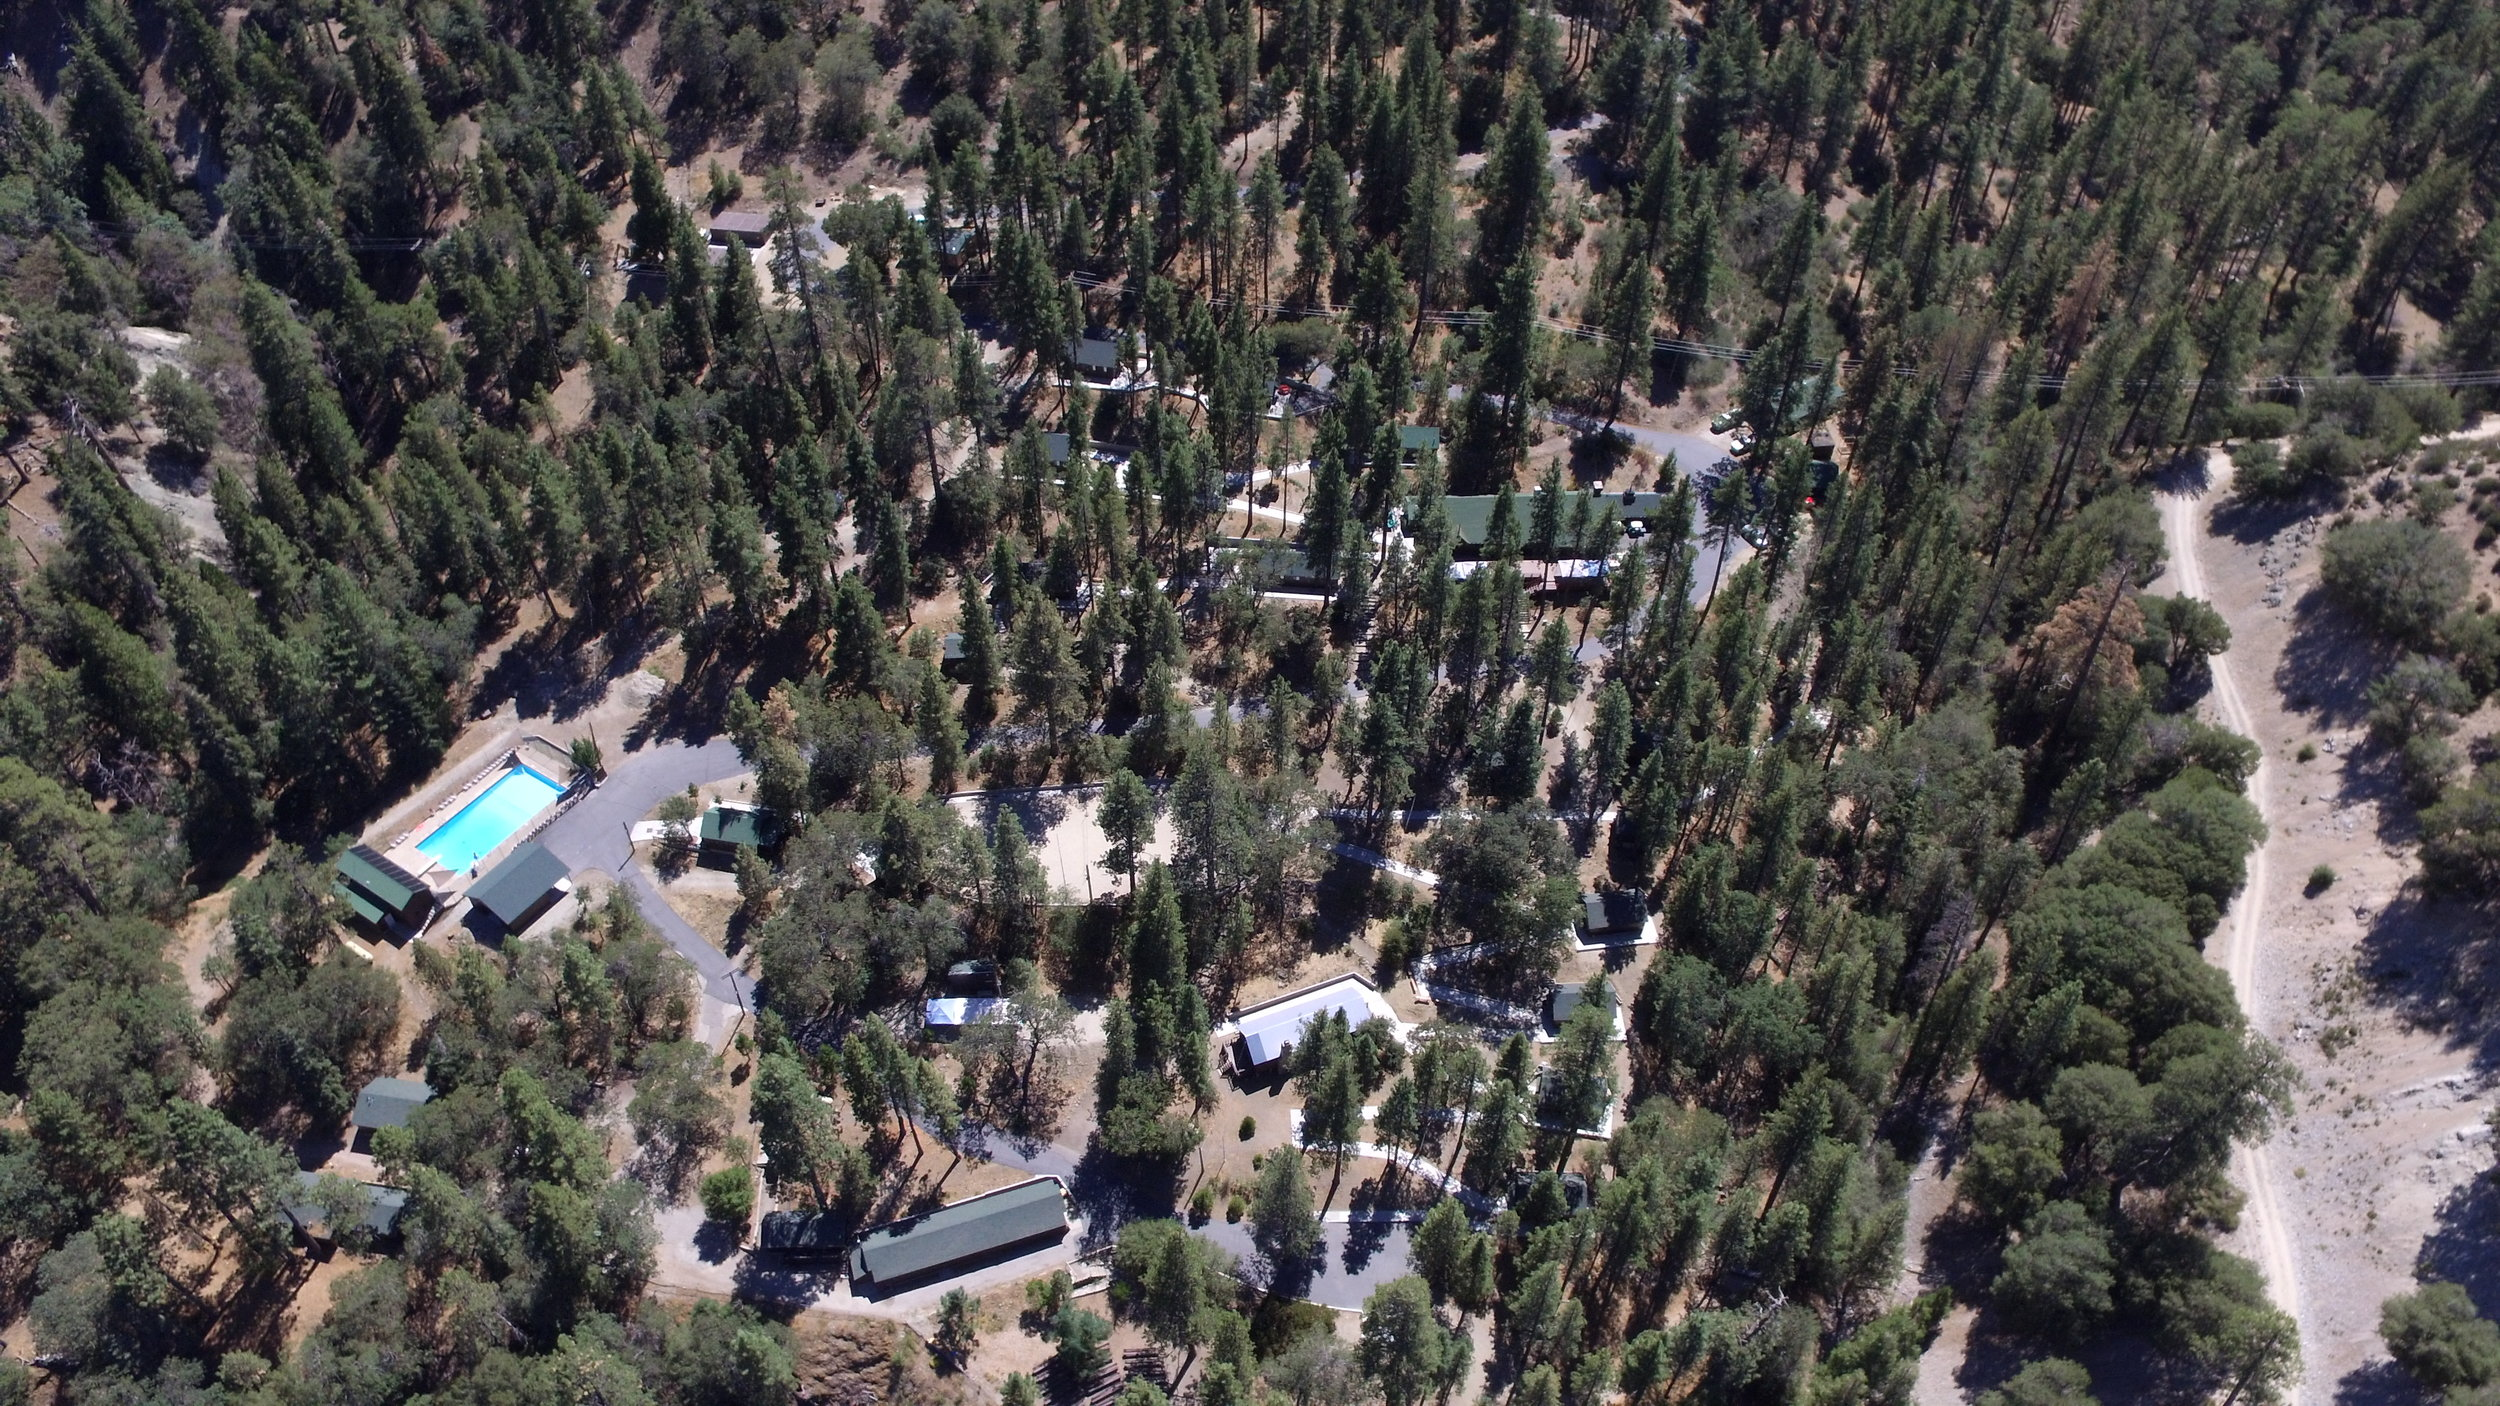 The camps - Teresita Pines Village, Wrightwood Village, and the Lions Den